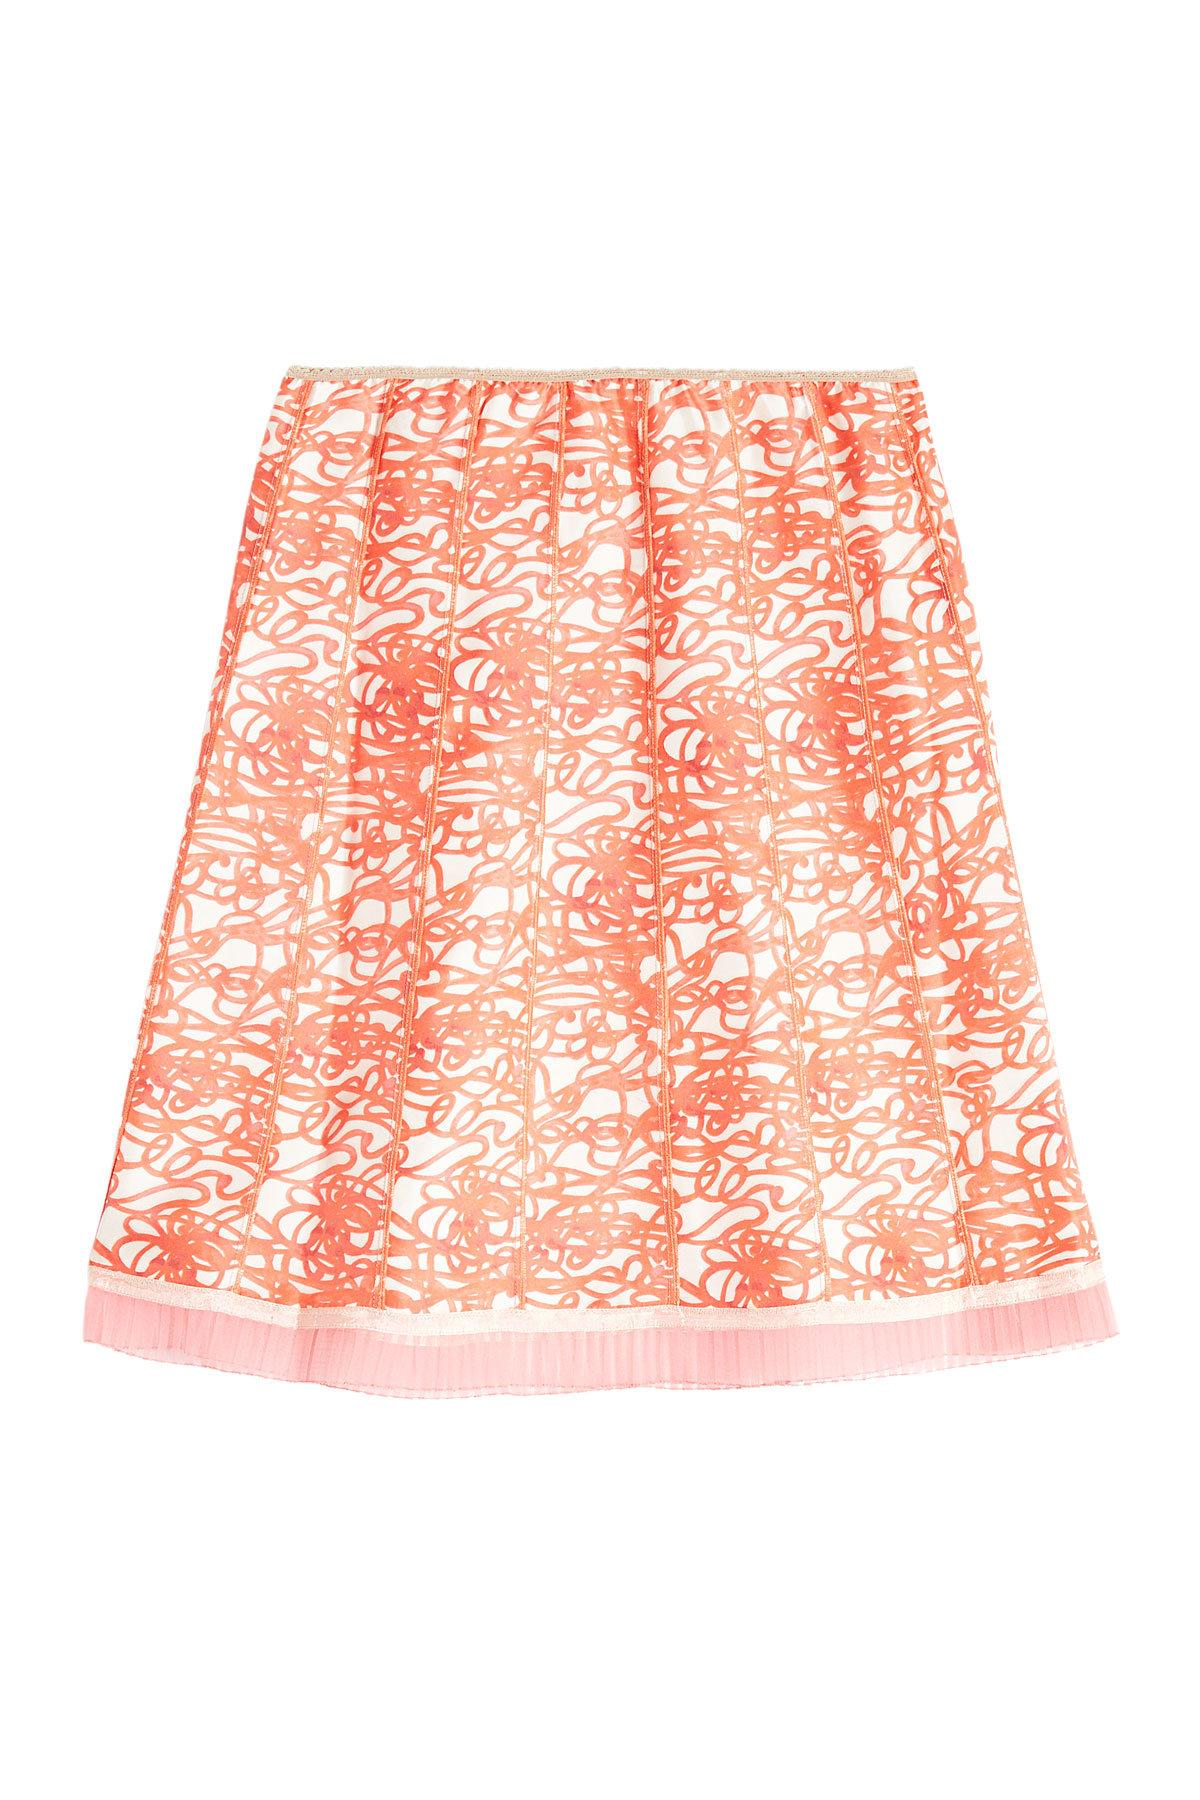 Marc Jacobs Printed Silk Skirt In Multicolored